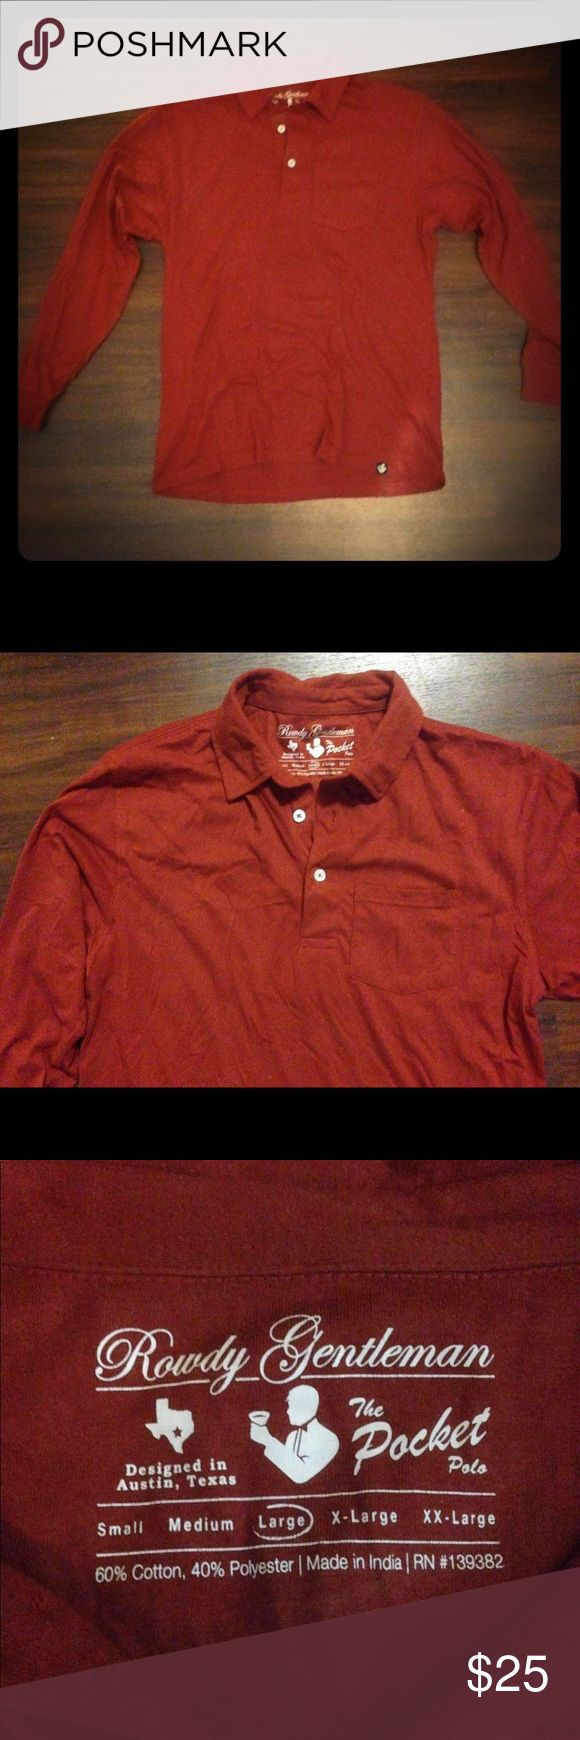 Pocket Polo Long Sleeve - Rowdy Gentleman Long sleeve red pocket polo from Rowdy Gentleman. Really soft material (60% cotton 40% polyester). Worn twice, great condition. Size L. Rowdy Gentleman Shirts Polos